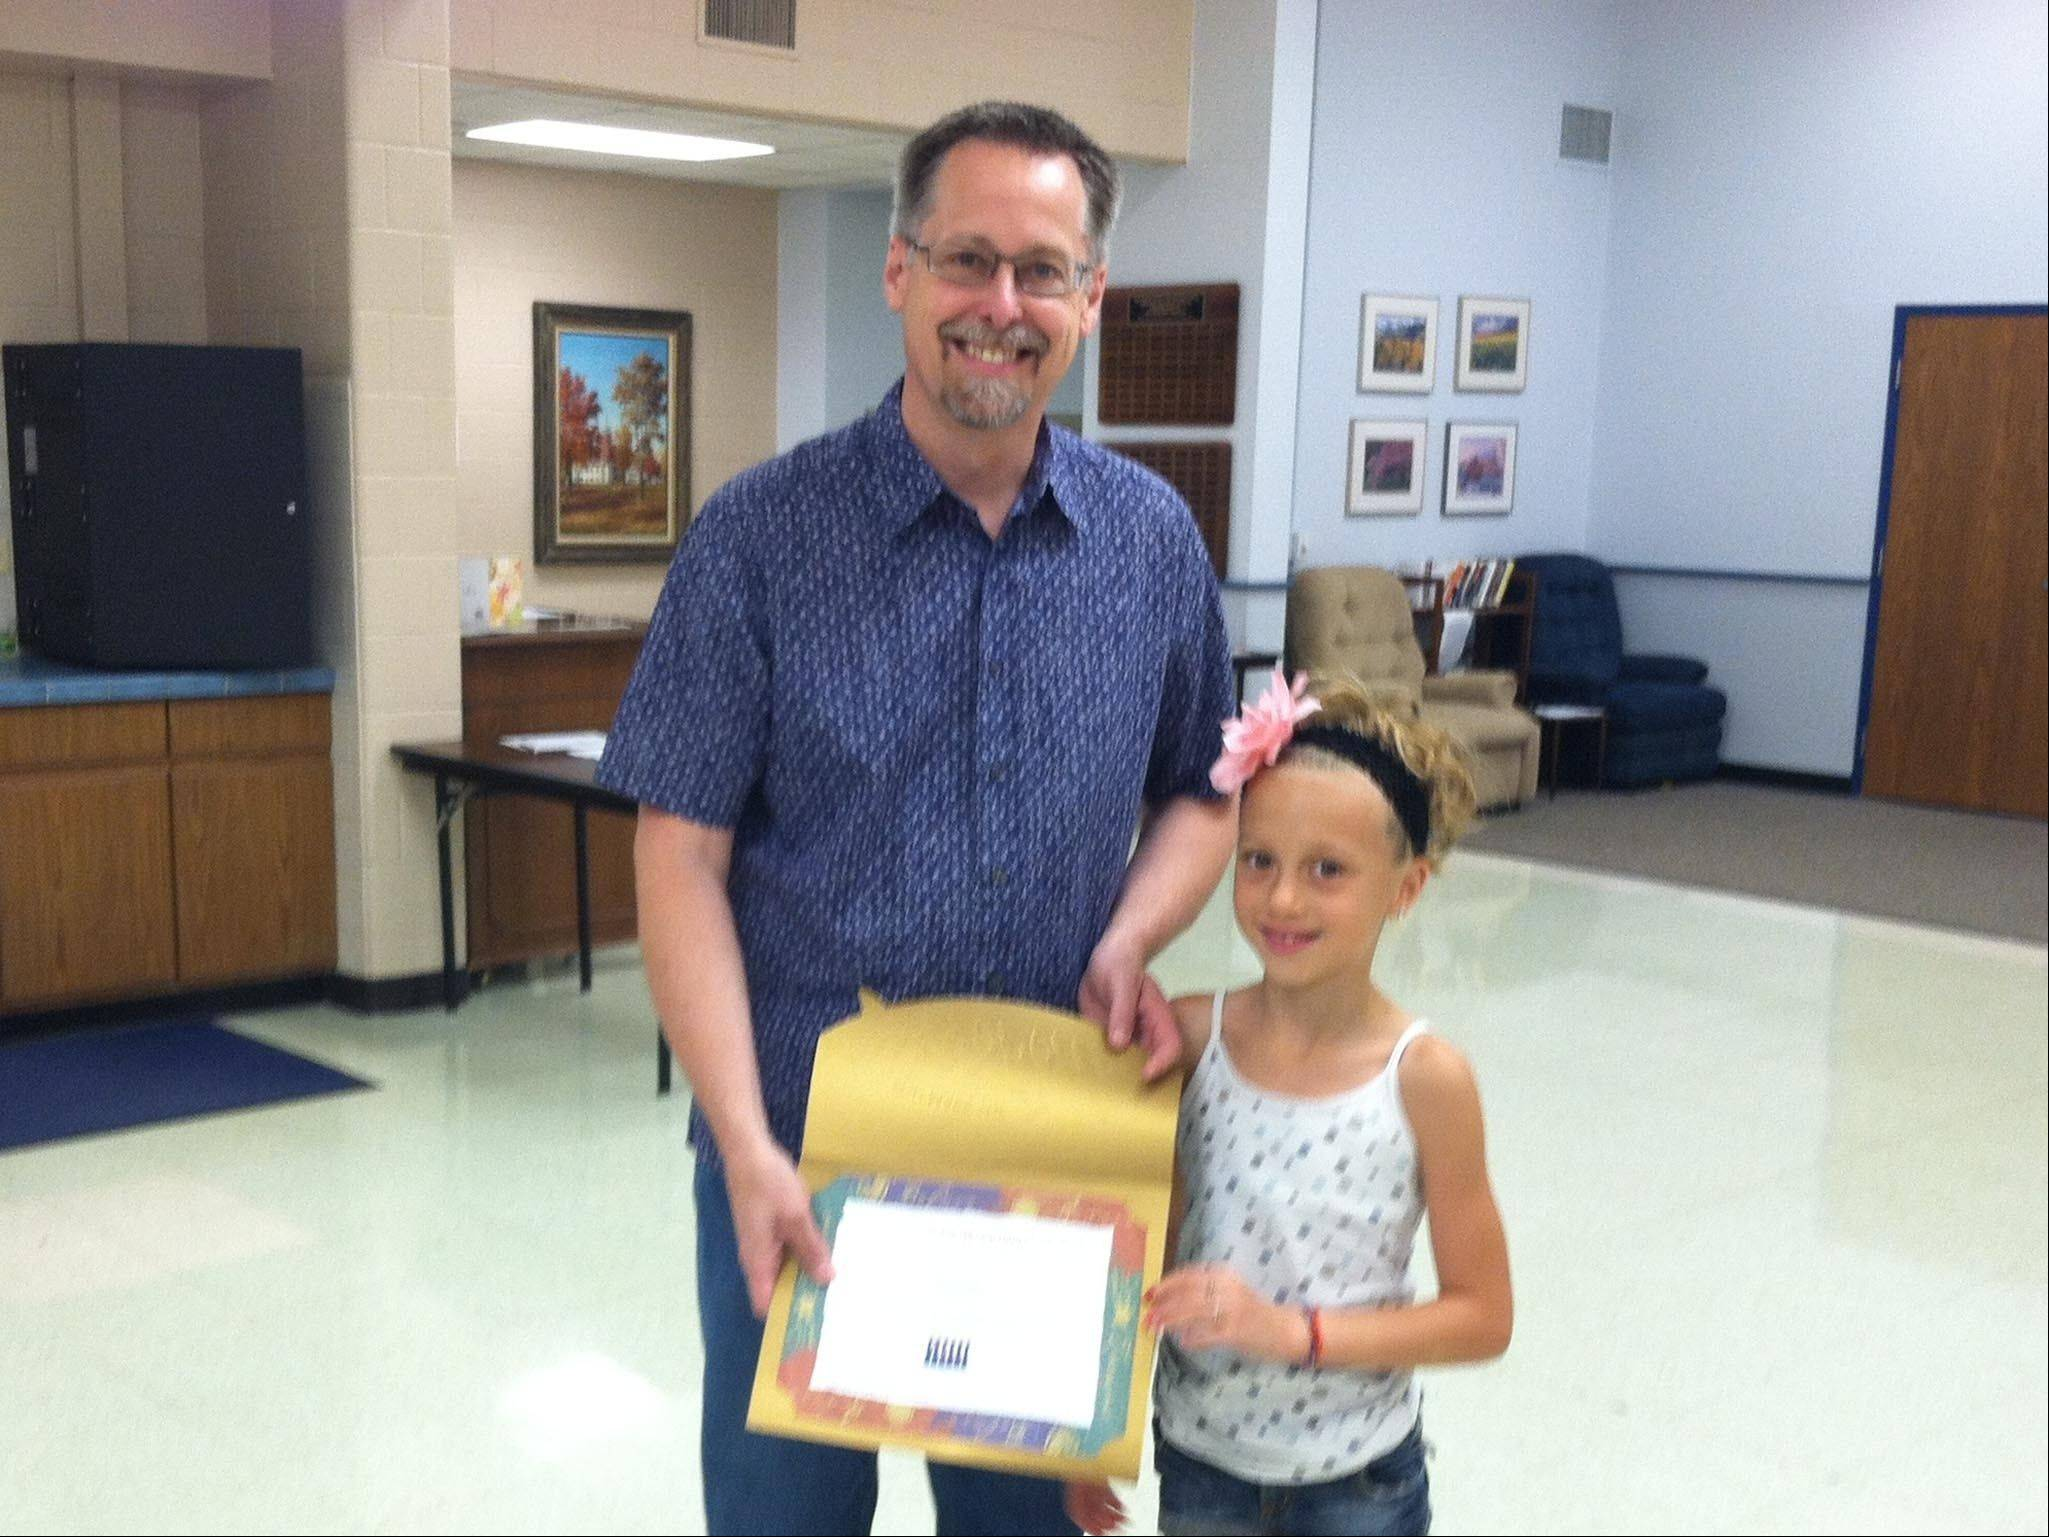 Character Coalition president Curt Hansen presents Izzy Ruiz with the Youth Service Award on July 3.